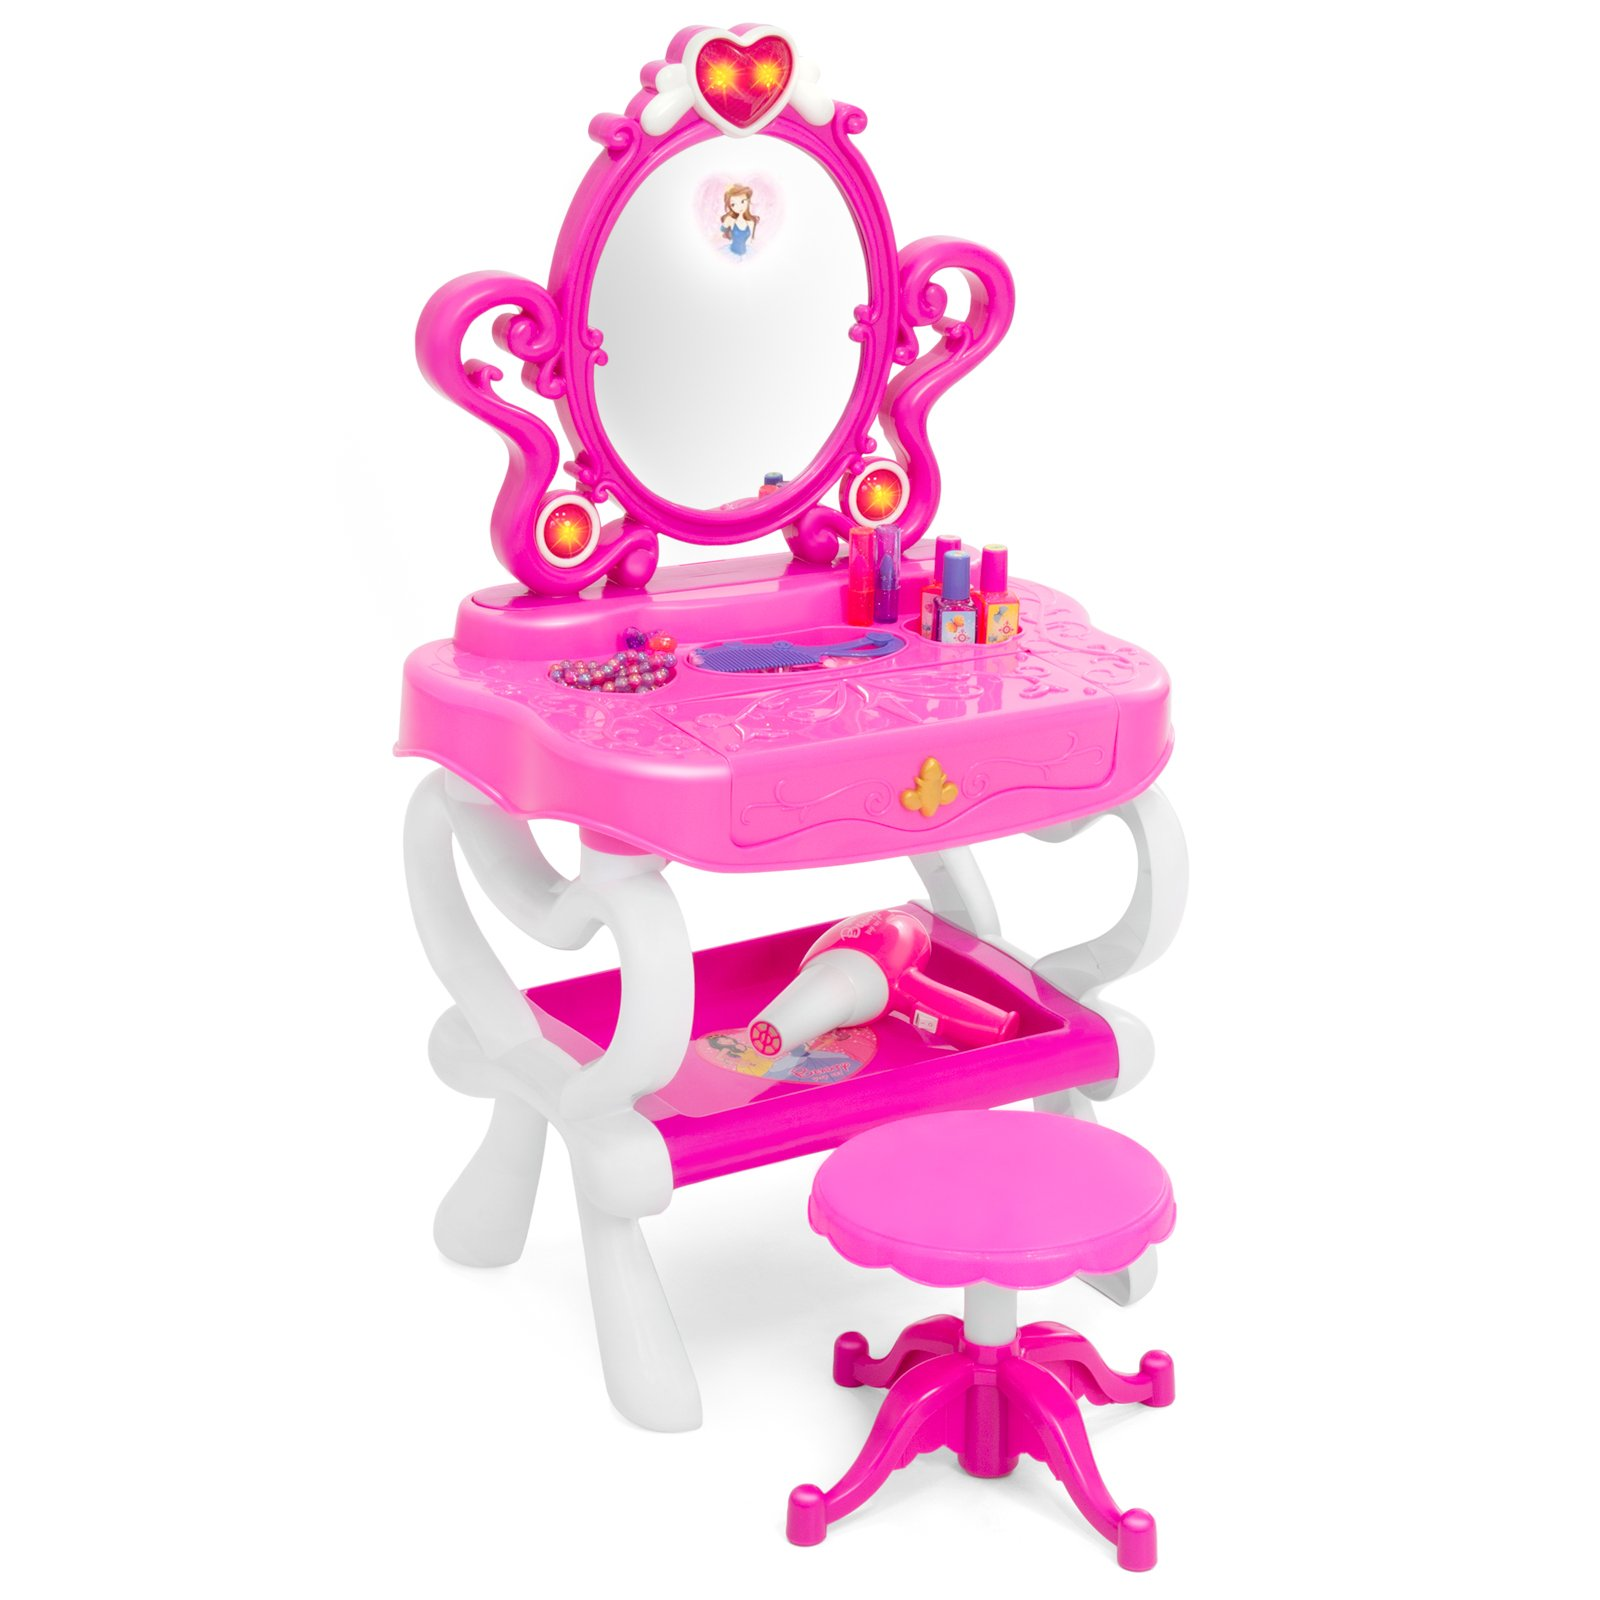 Best Choice Products Kids 2-in-1 Vanity Mirror and 18-Key Keyboard with Toy Hairdryer, Stool, Lights by Best Choice Products